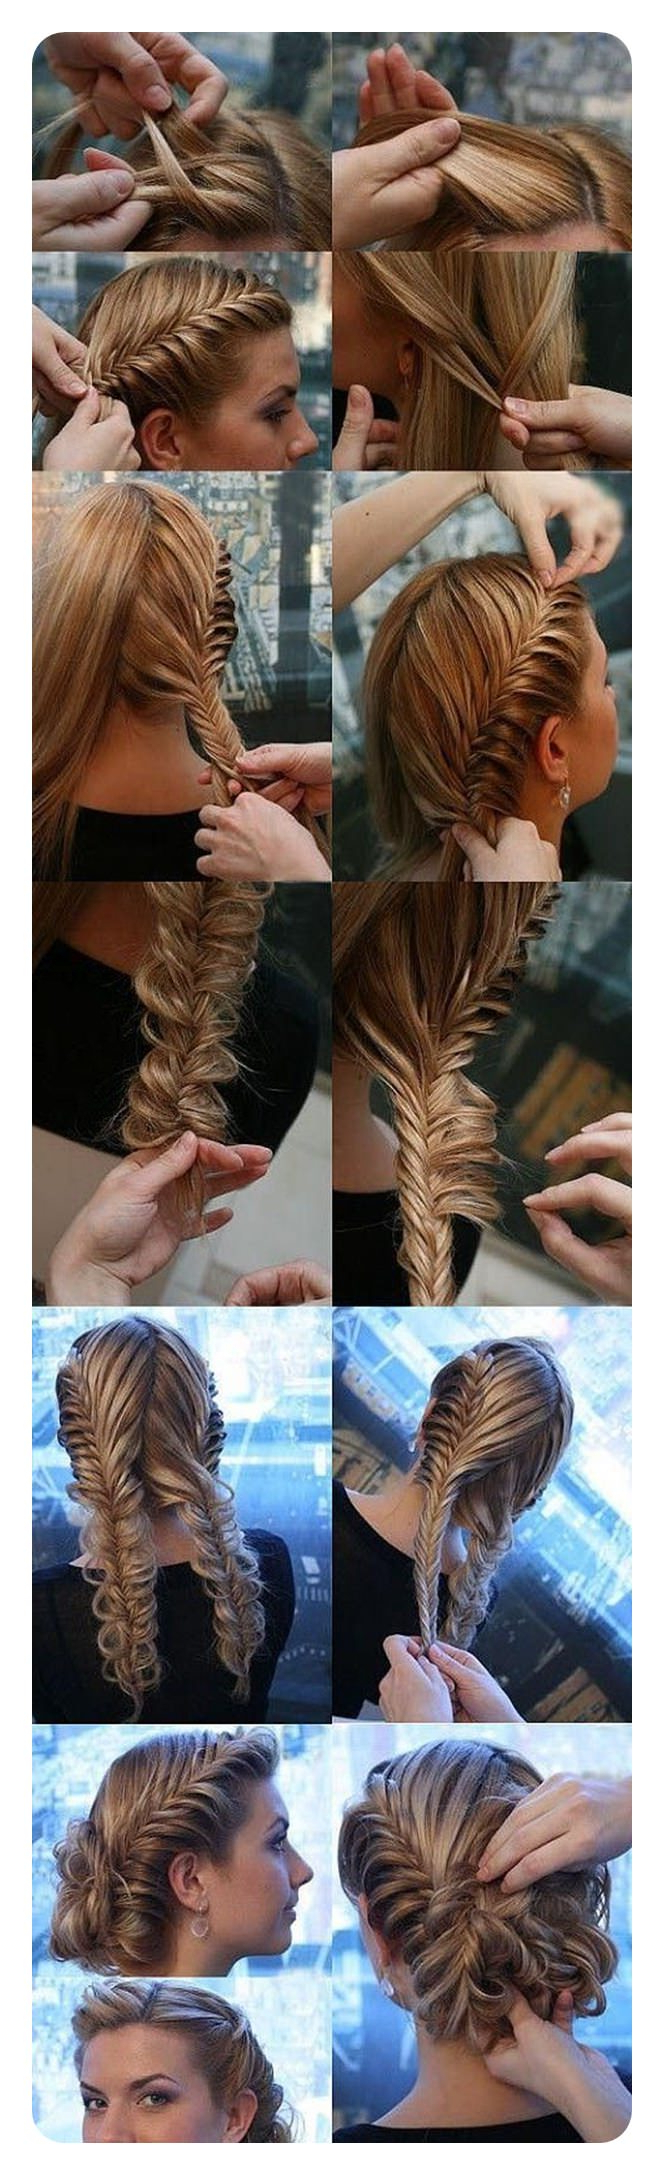 110 Charismatic Fishtail Braid To Try Throughout Most Current Nostalgic Knotted Mermaid Braid Hairstyles (View 18 of 20)